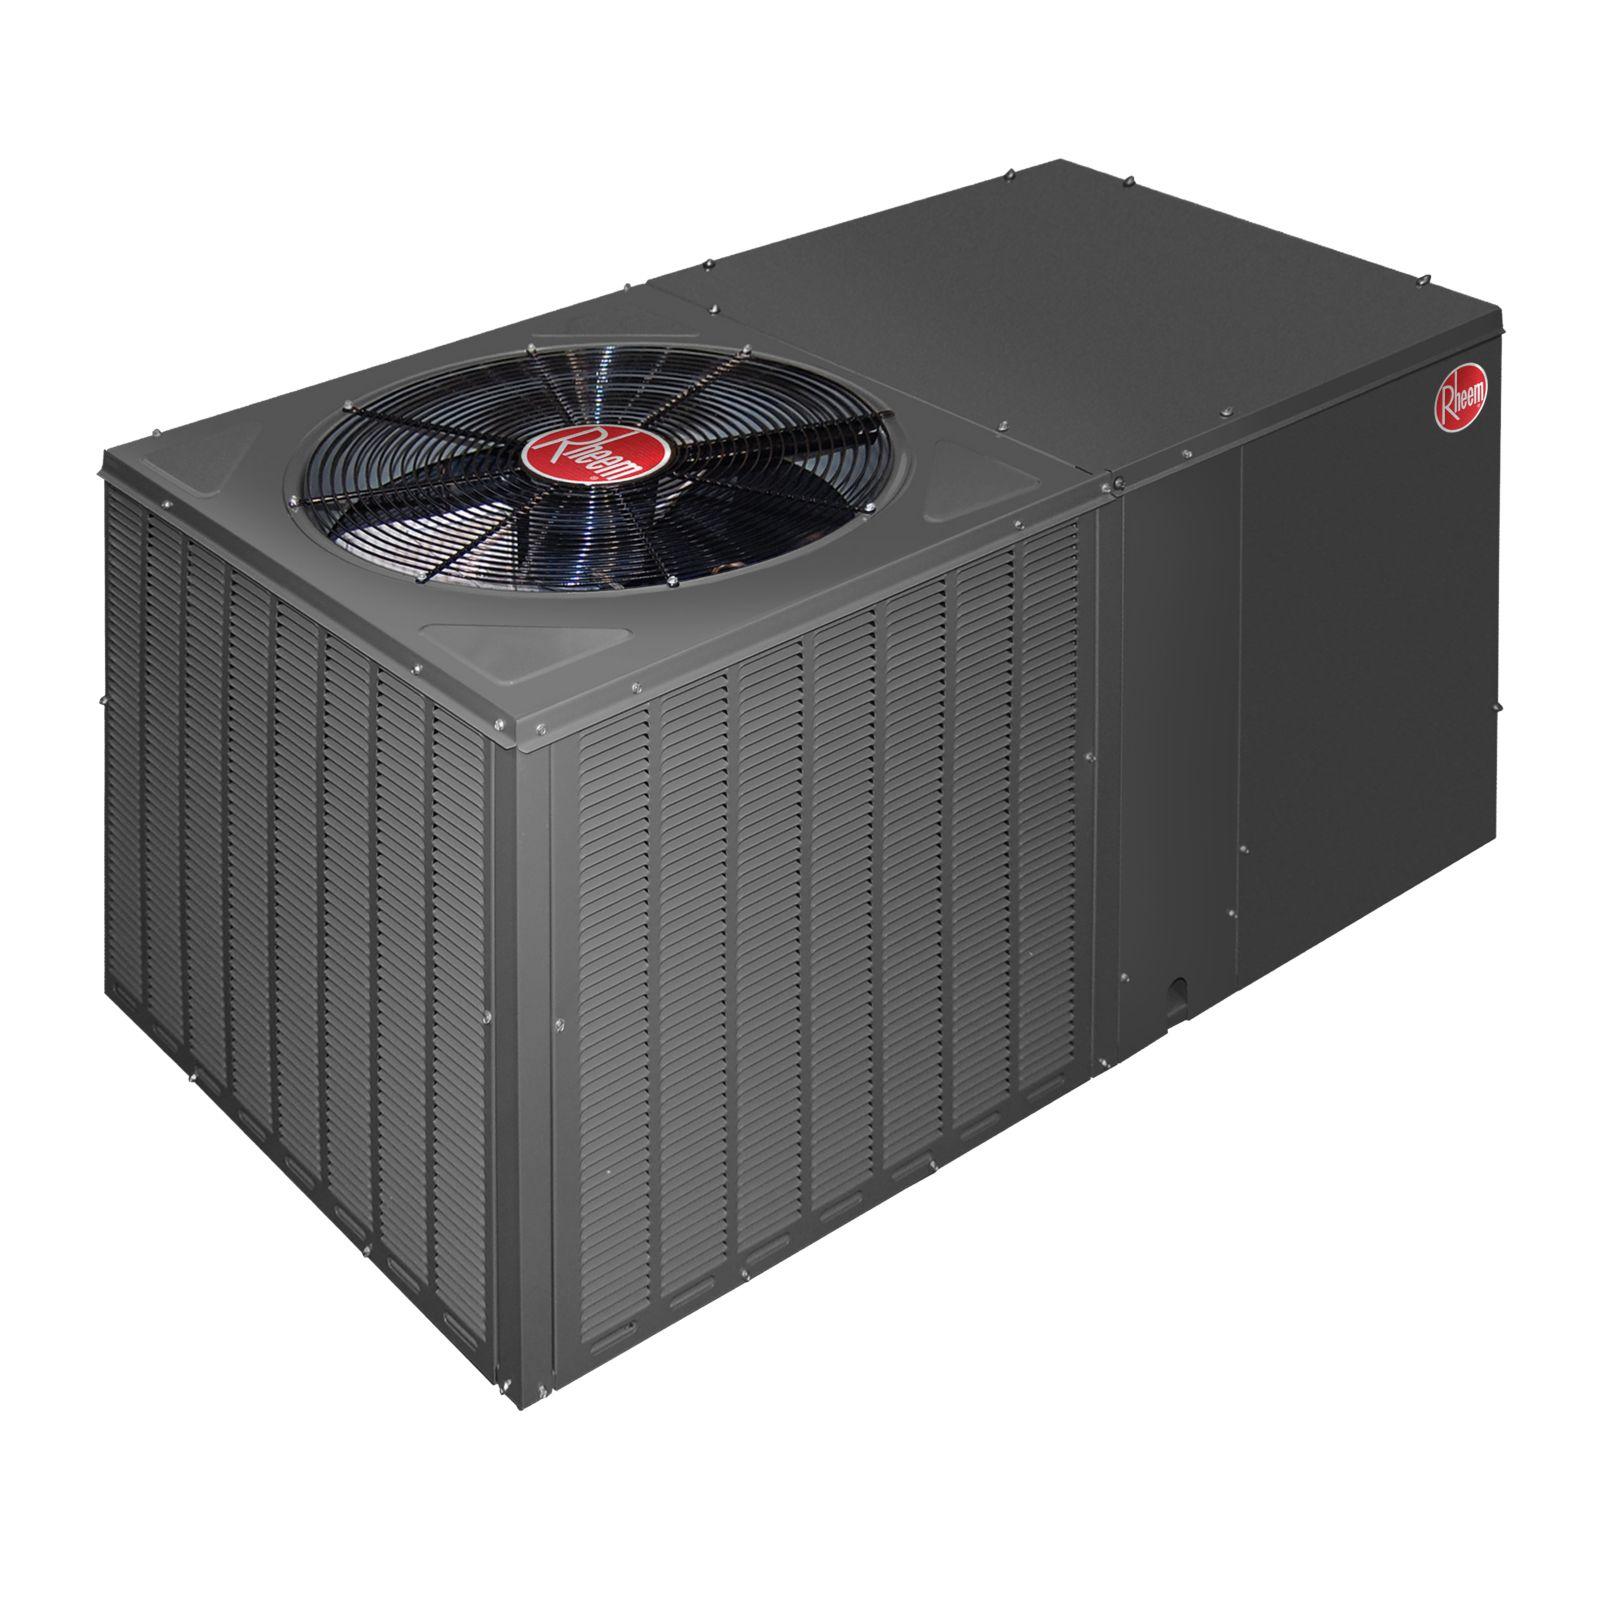 Rheem RSPM-A036JK000 - Classic 3 Ton, 14 SEER, Packaged Air Conditioner - Dedicated Horizontal, 208-230 V, 1 Ph, 60 Hz